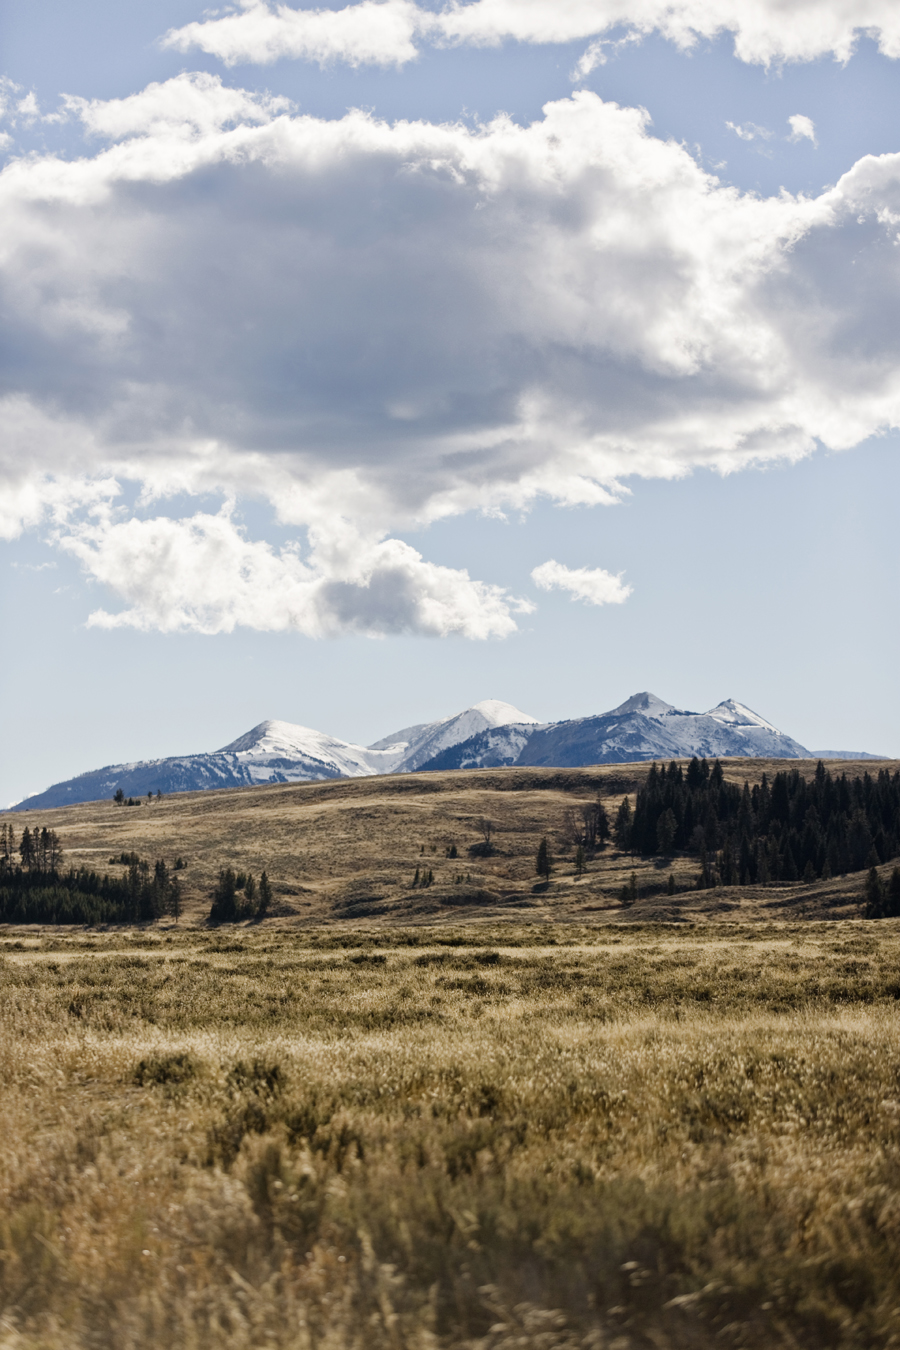 roadtrip_celinemarks_ny_montana2015_217